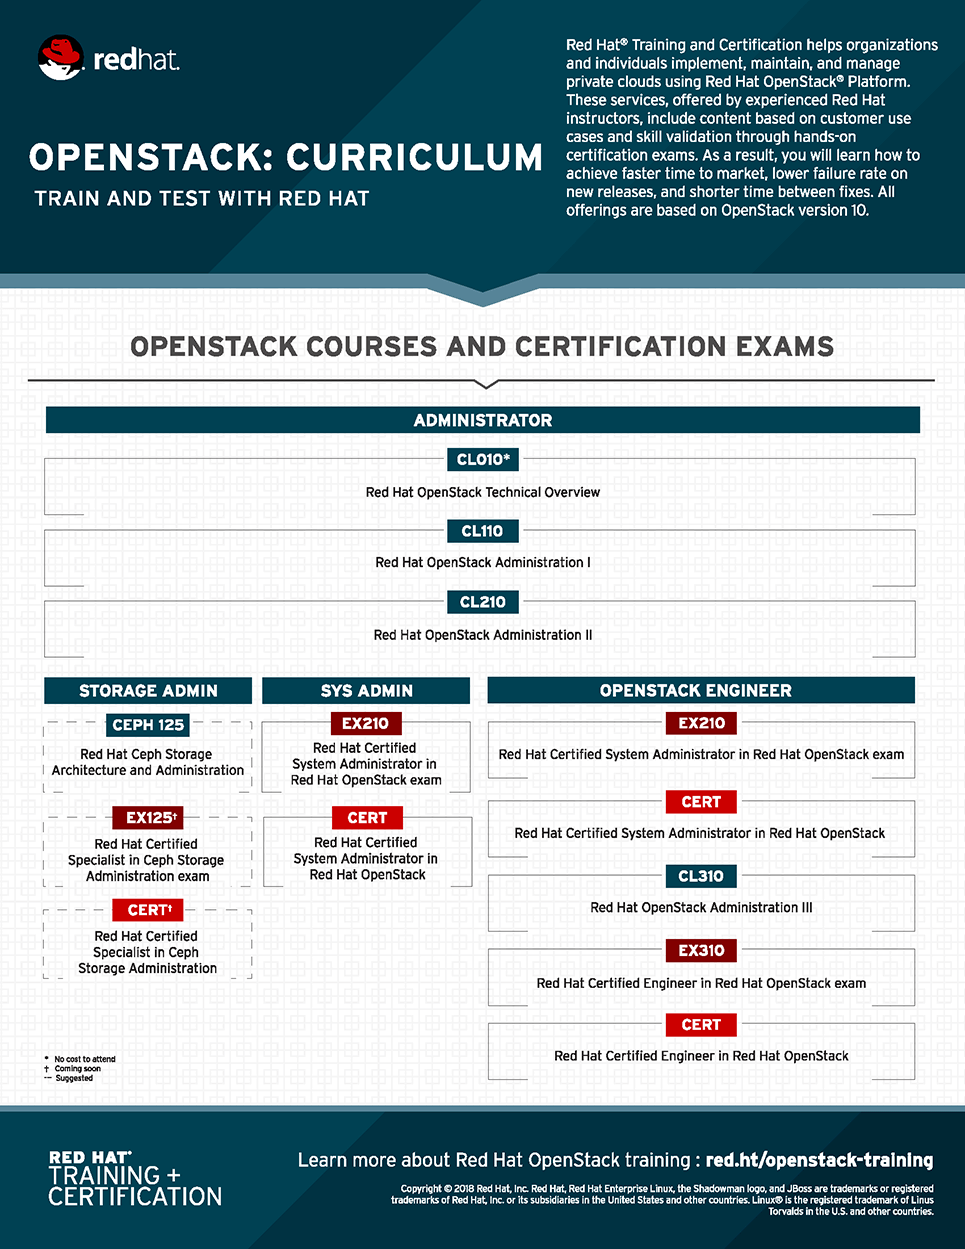 View All Certifications And Exams